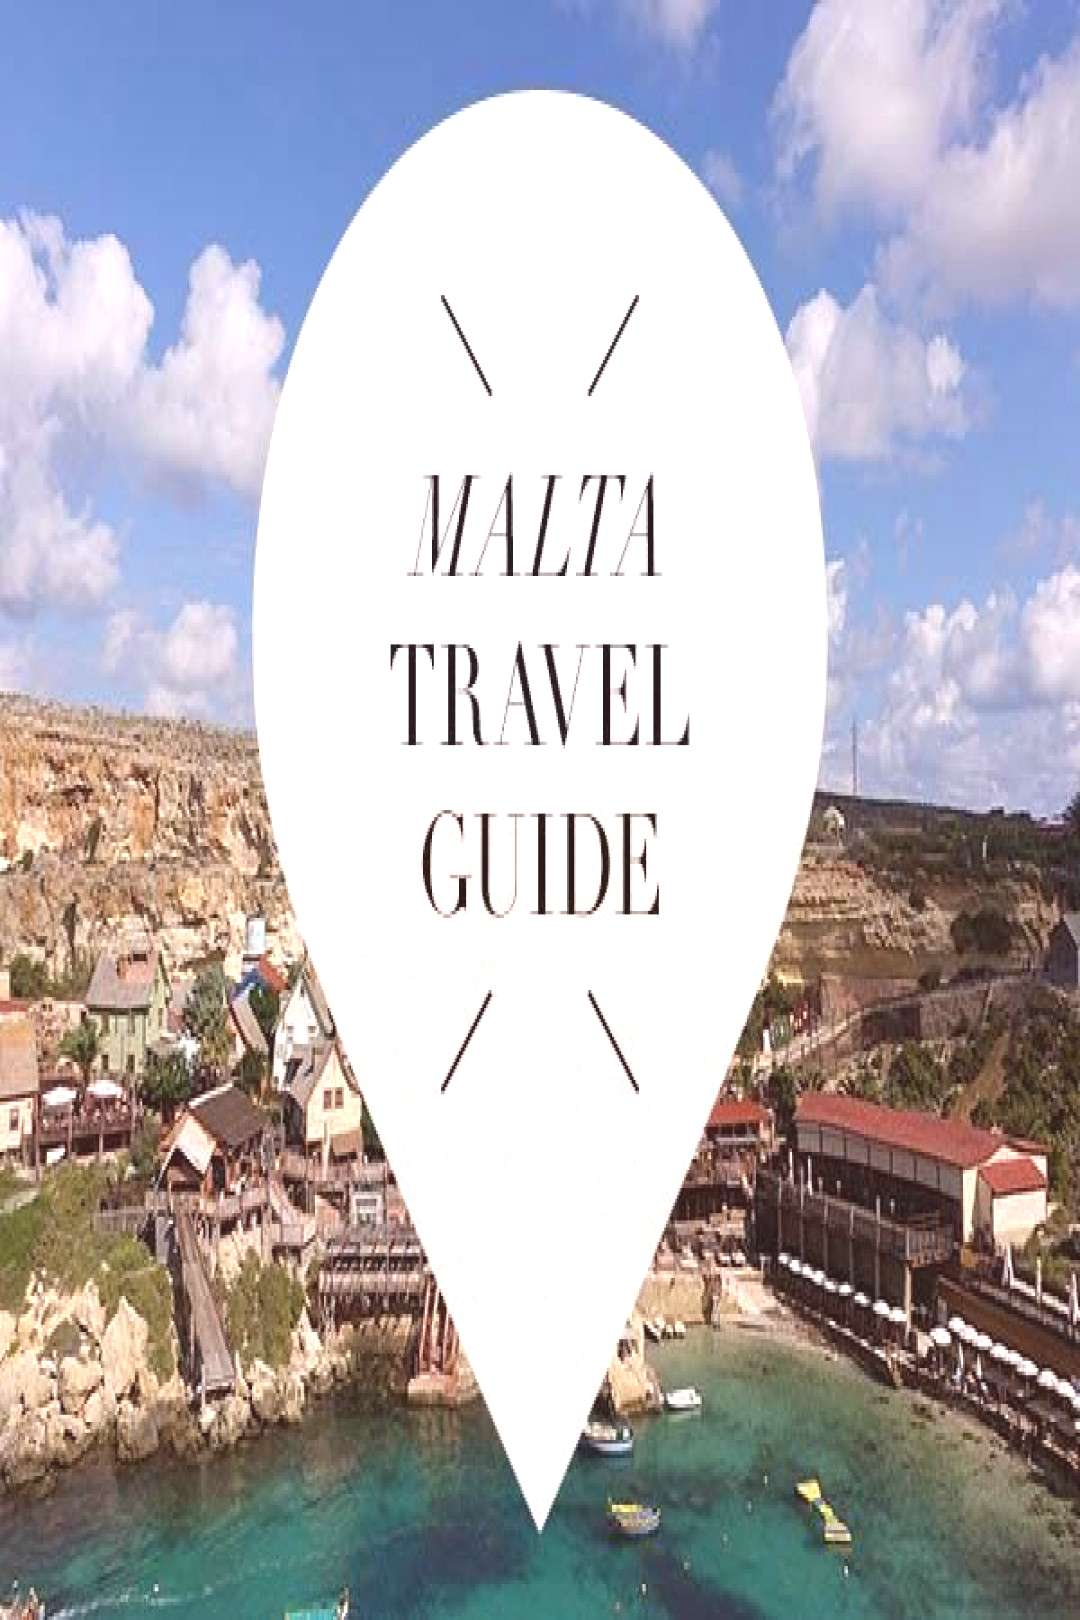 Malta Travel Guide: hotspots, sights and restaurants#guide